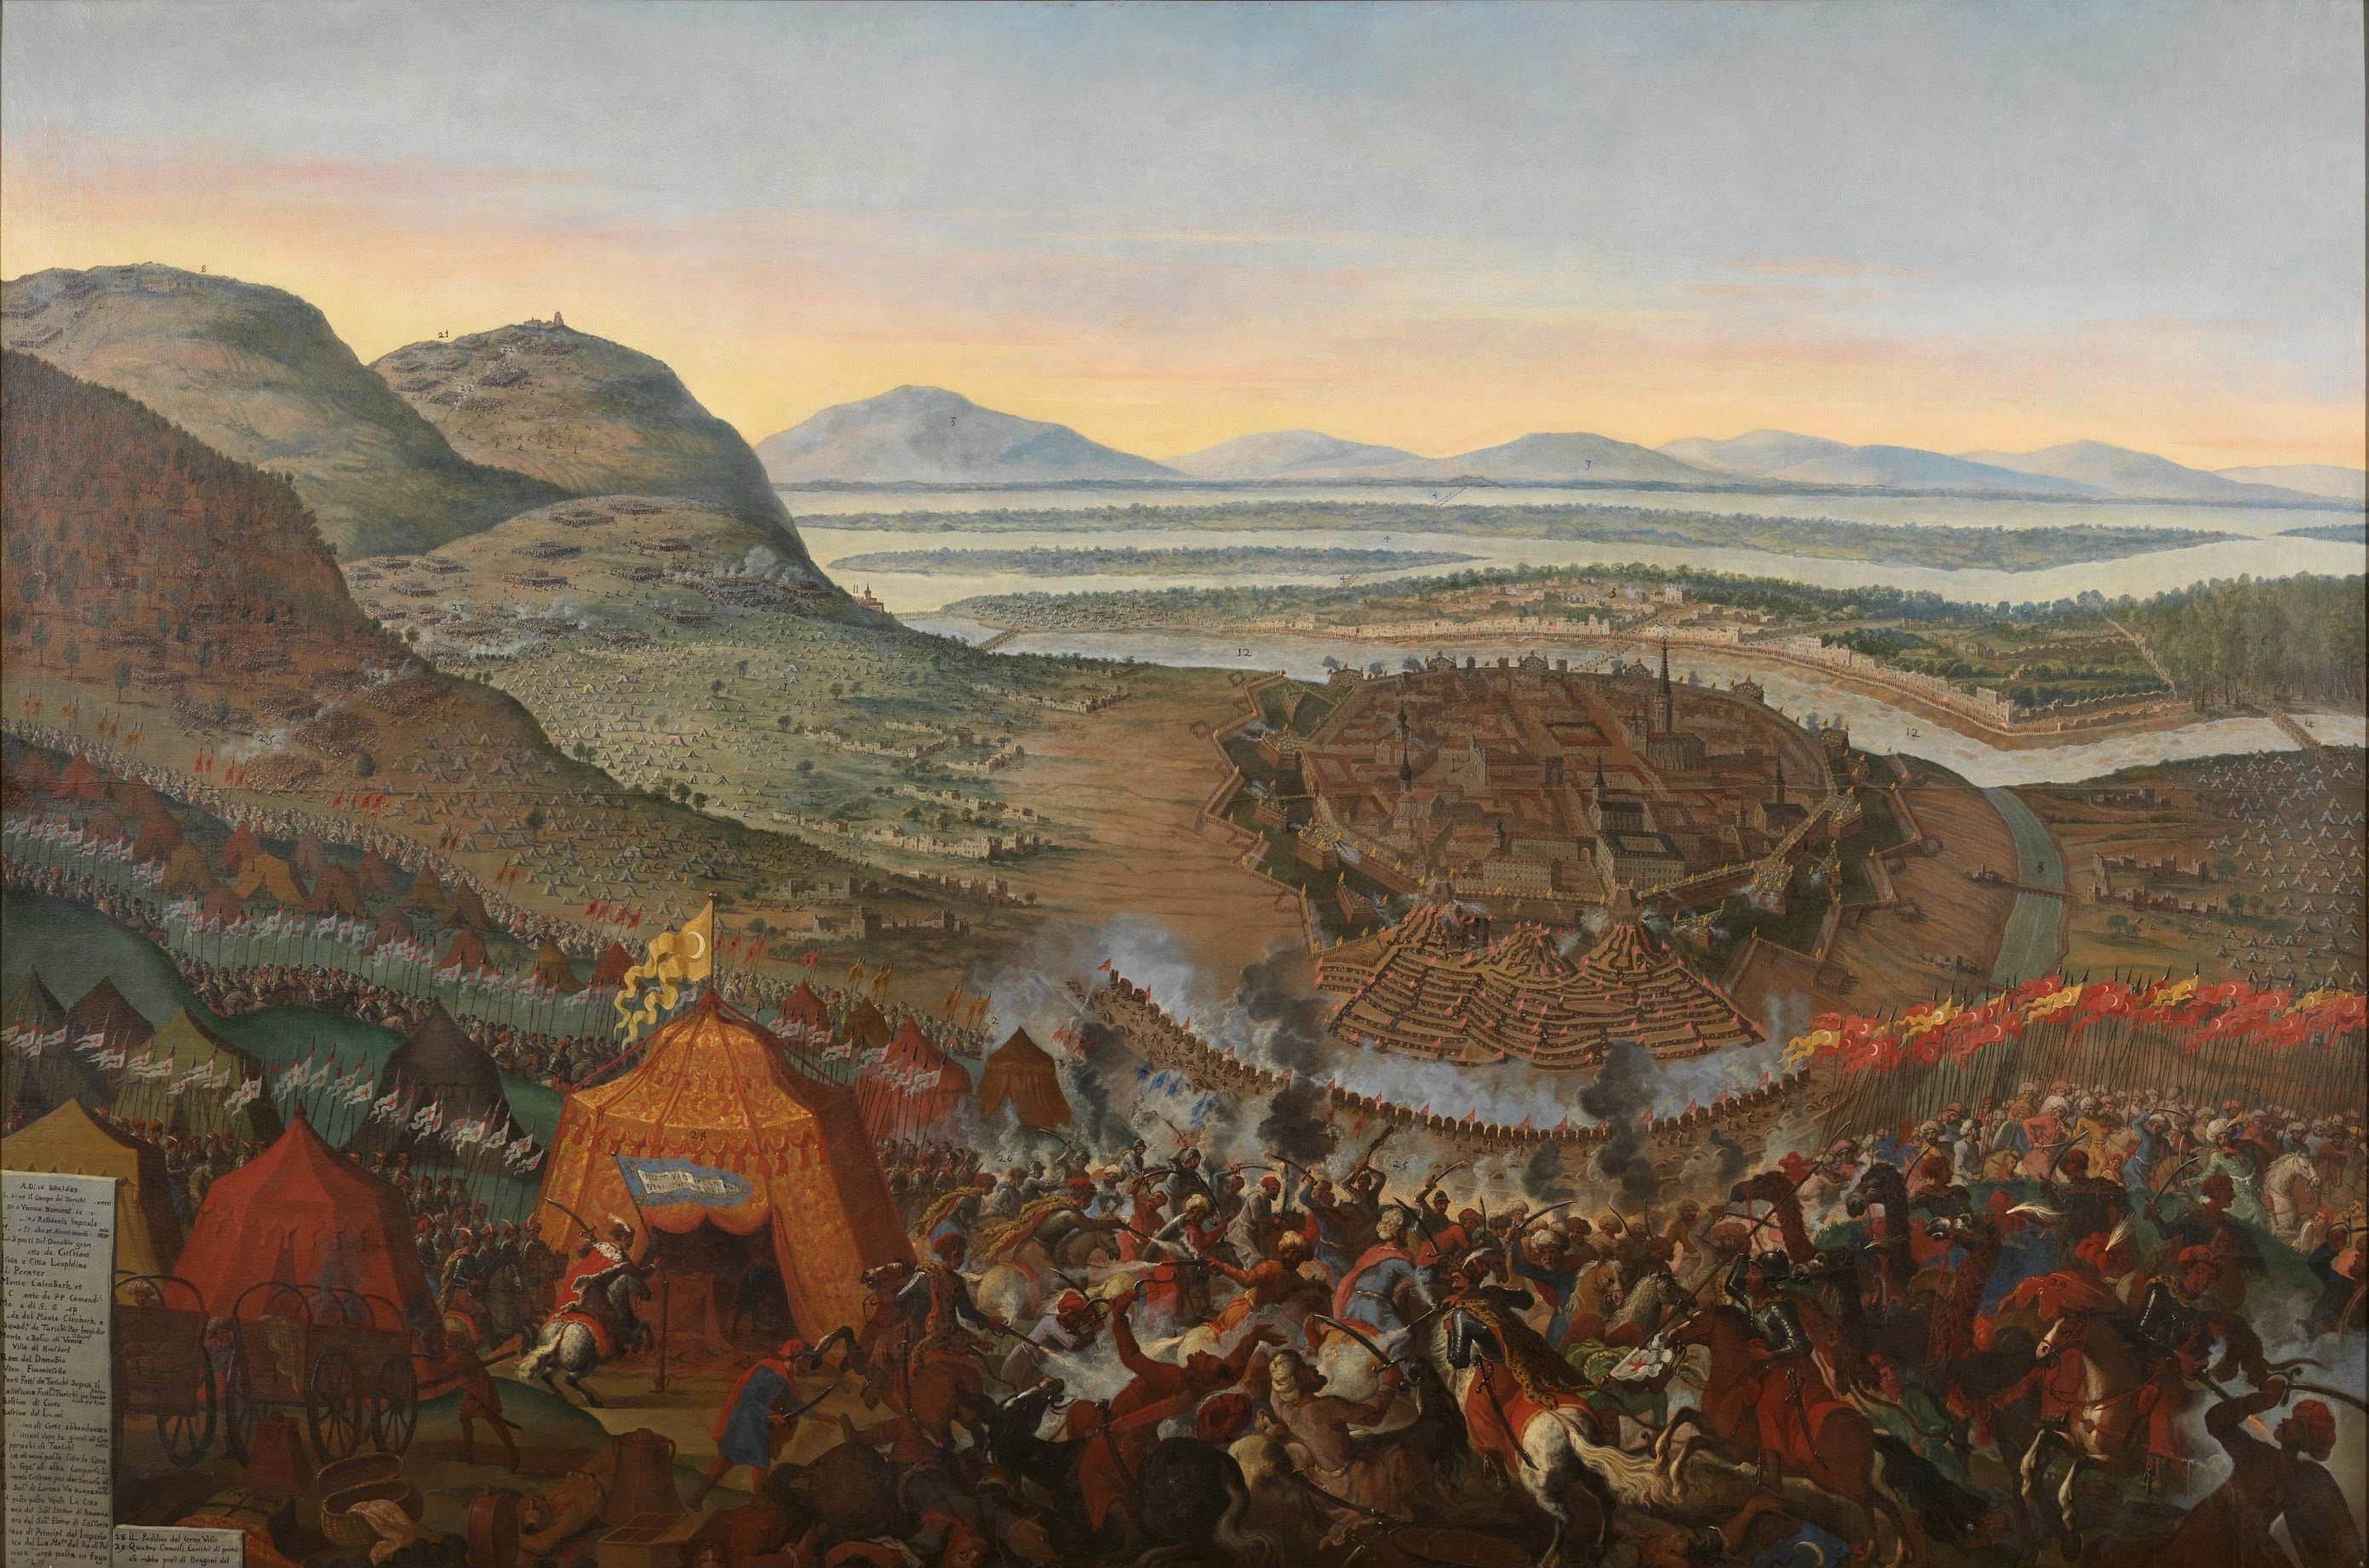 Christians Defeat Turks at Battle of Vienna.  Trusting in Our Lady, Jan Sobieski of Poland and His Cavalry Save the Day.